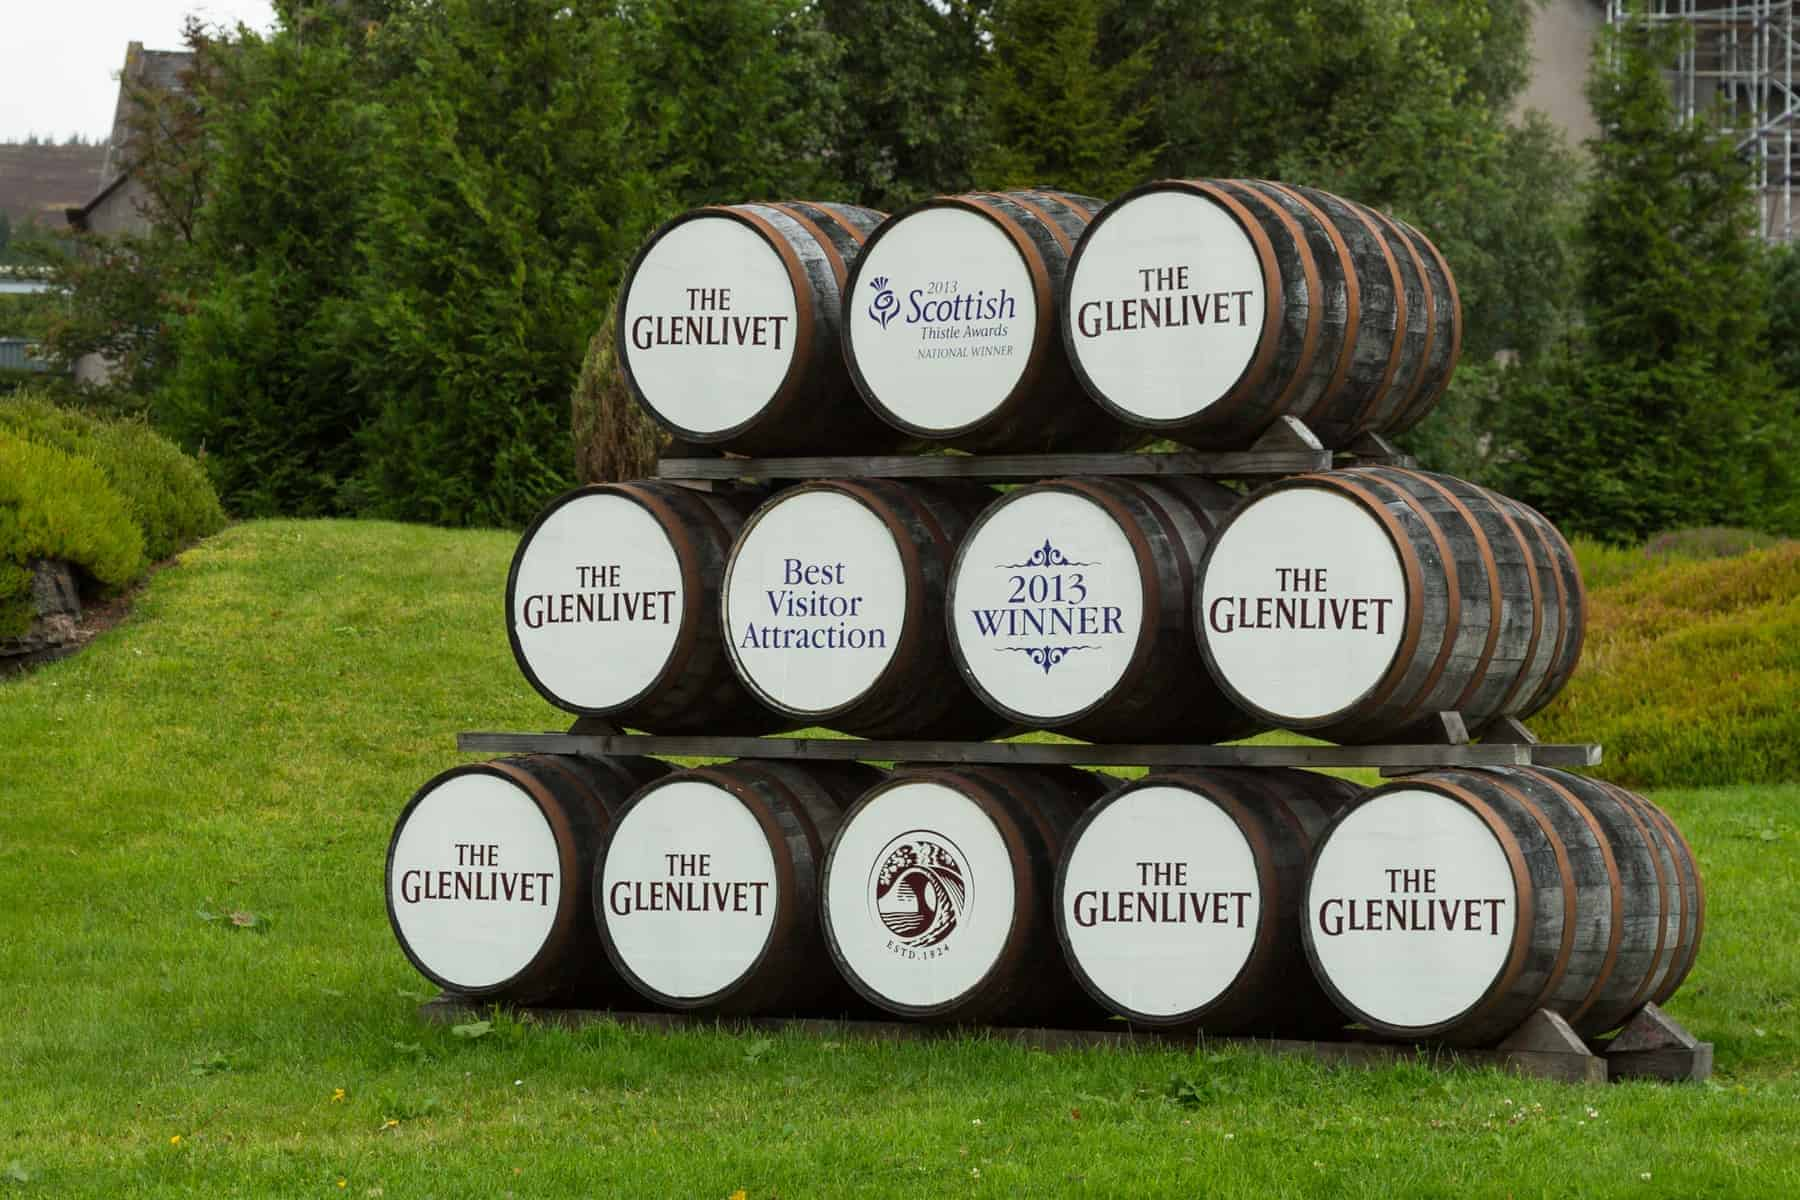 The Glenlivet whisky barrels in front of the distillery